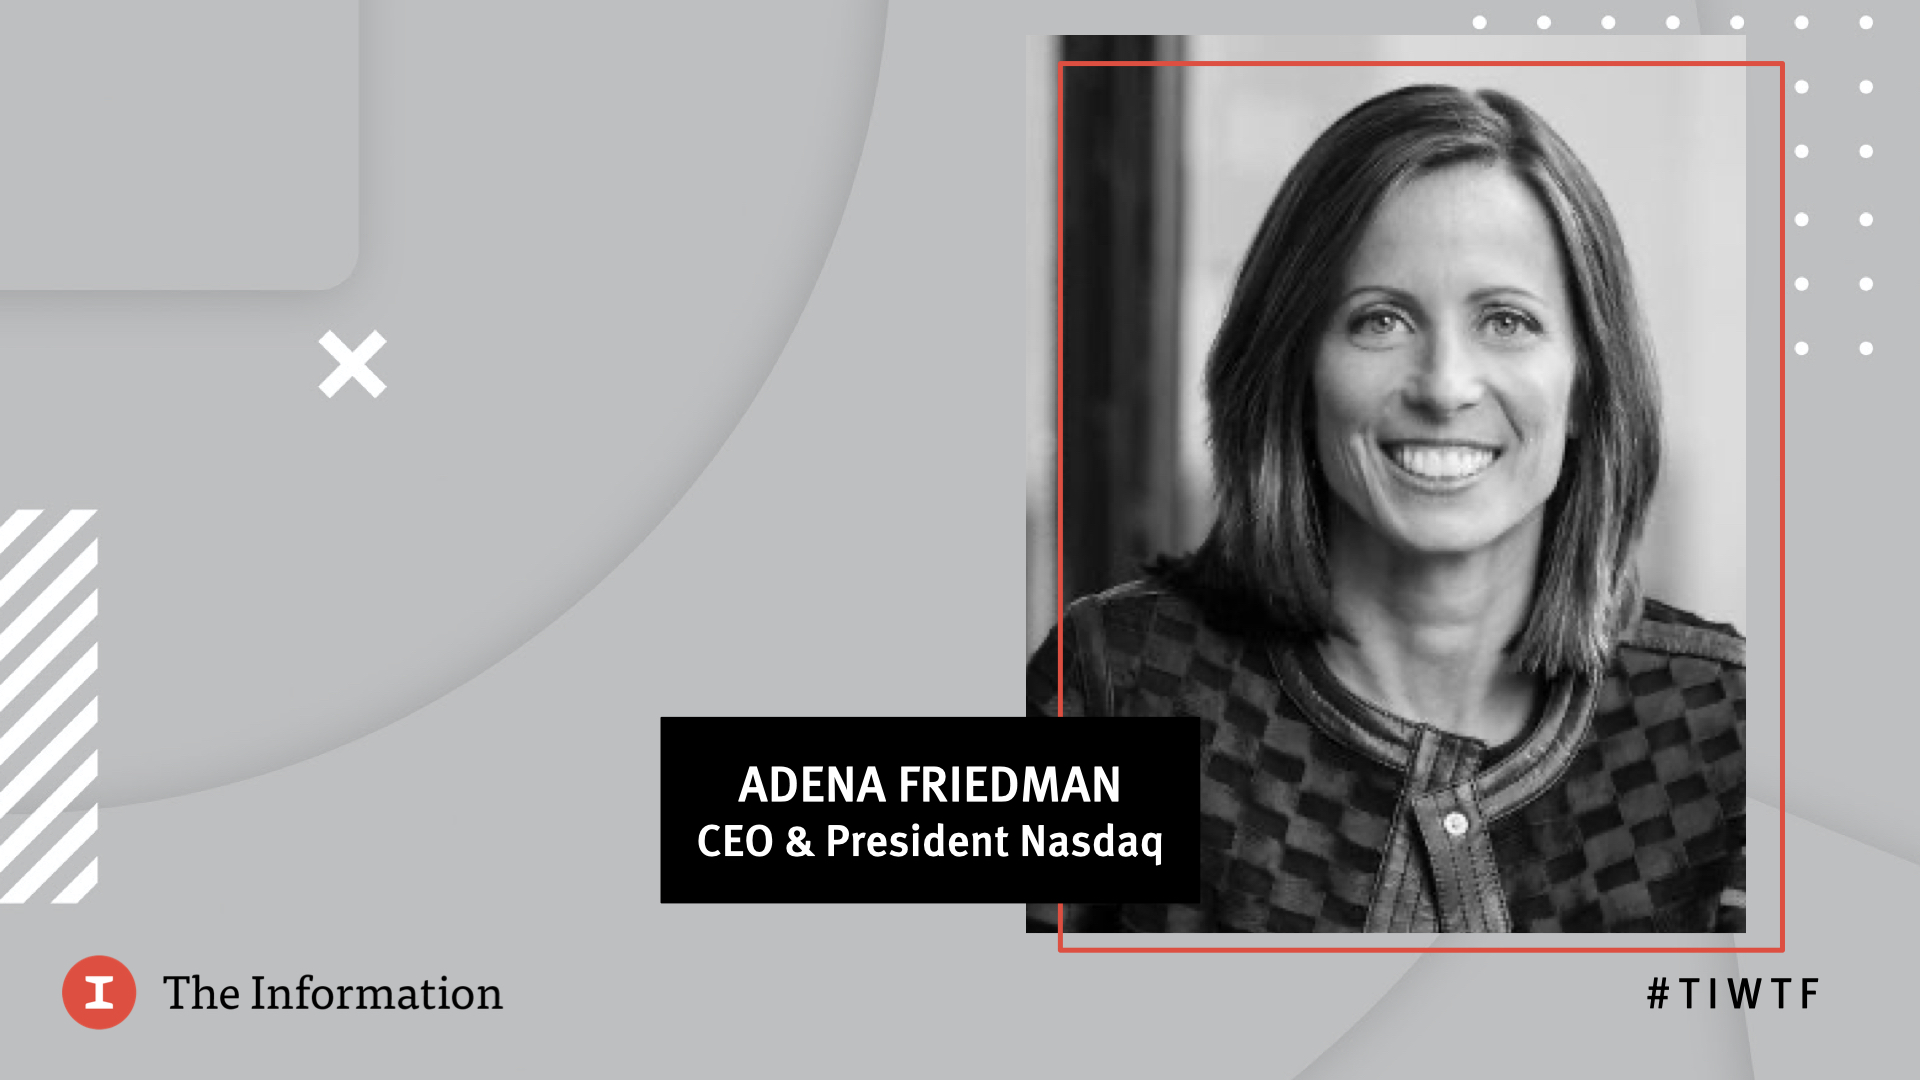 WTF 2020 - Nasdaq's President & CEO Adena Friedman in conversation with Kate Clark, reporter at The Information